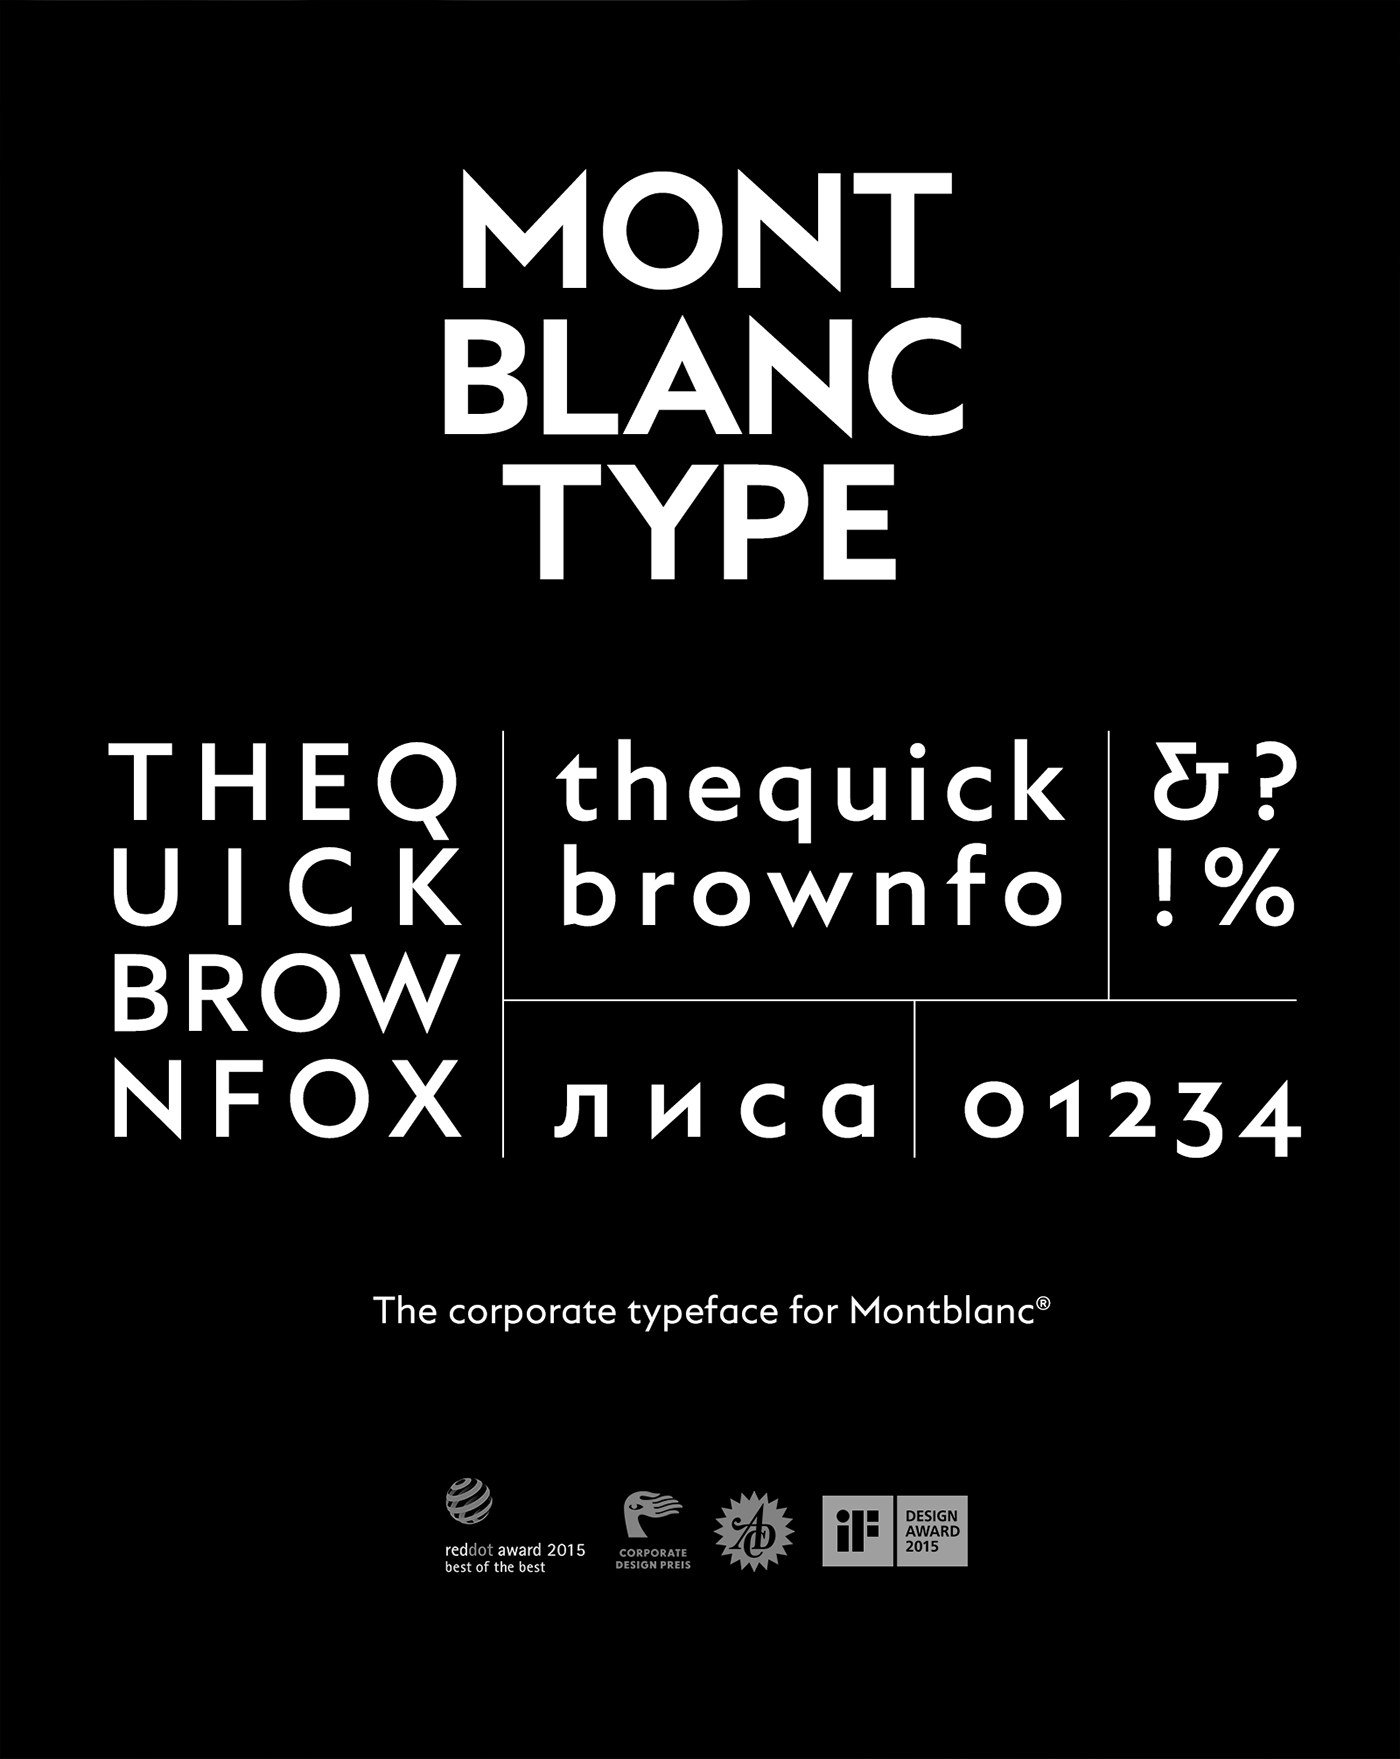 Montblanc Type is the corporate typeface for Montblanc. A